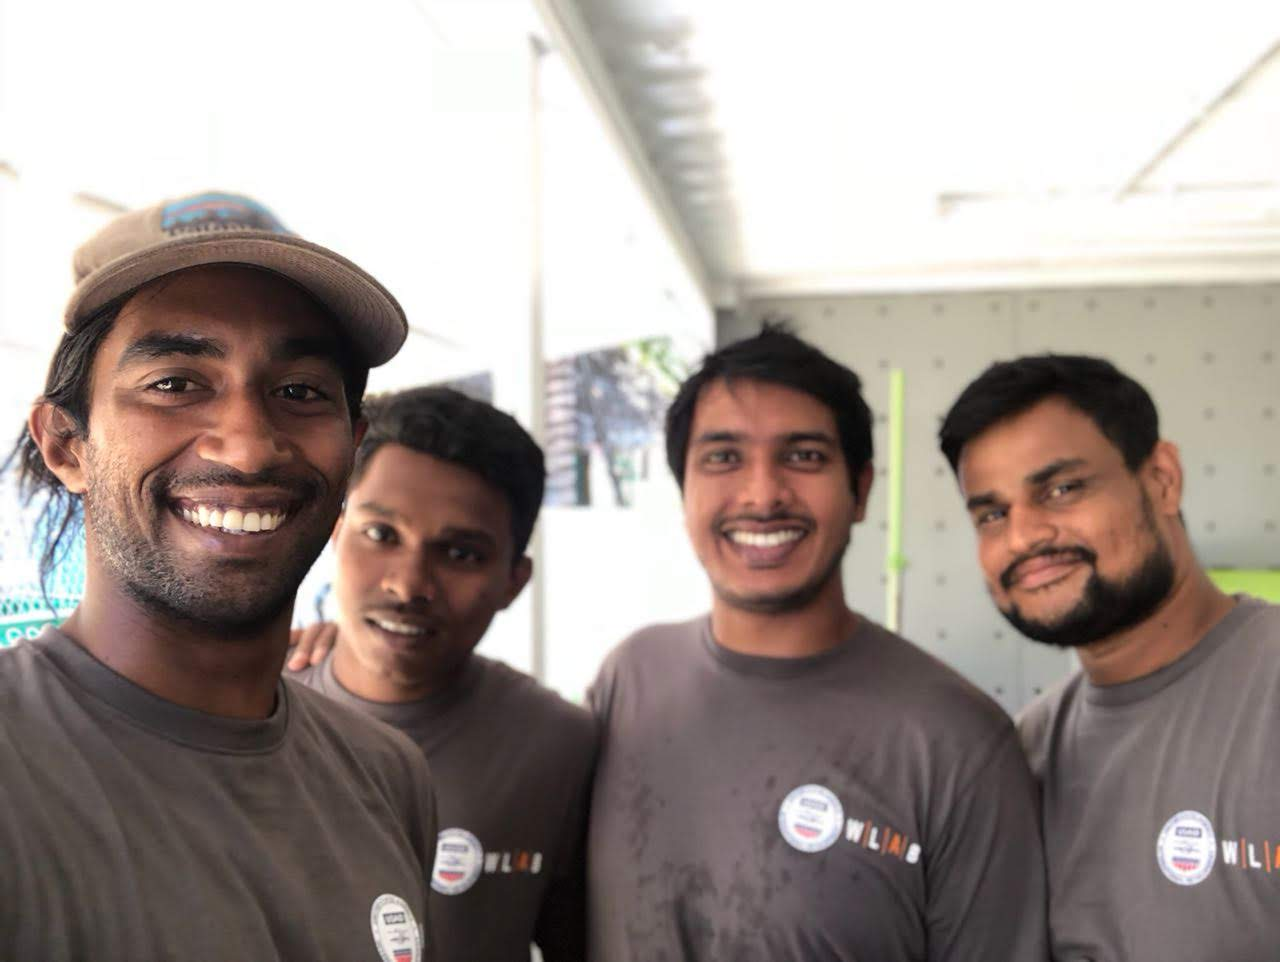 Meet the team in our freshly arrived team shirts. Form left to right: Vinod, Siyam, Fazry and Sulfi.